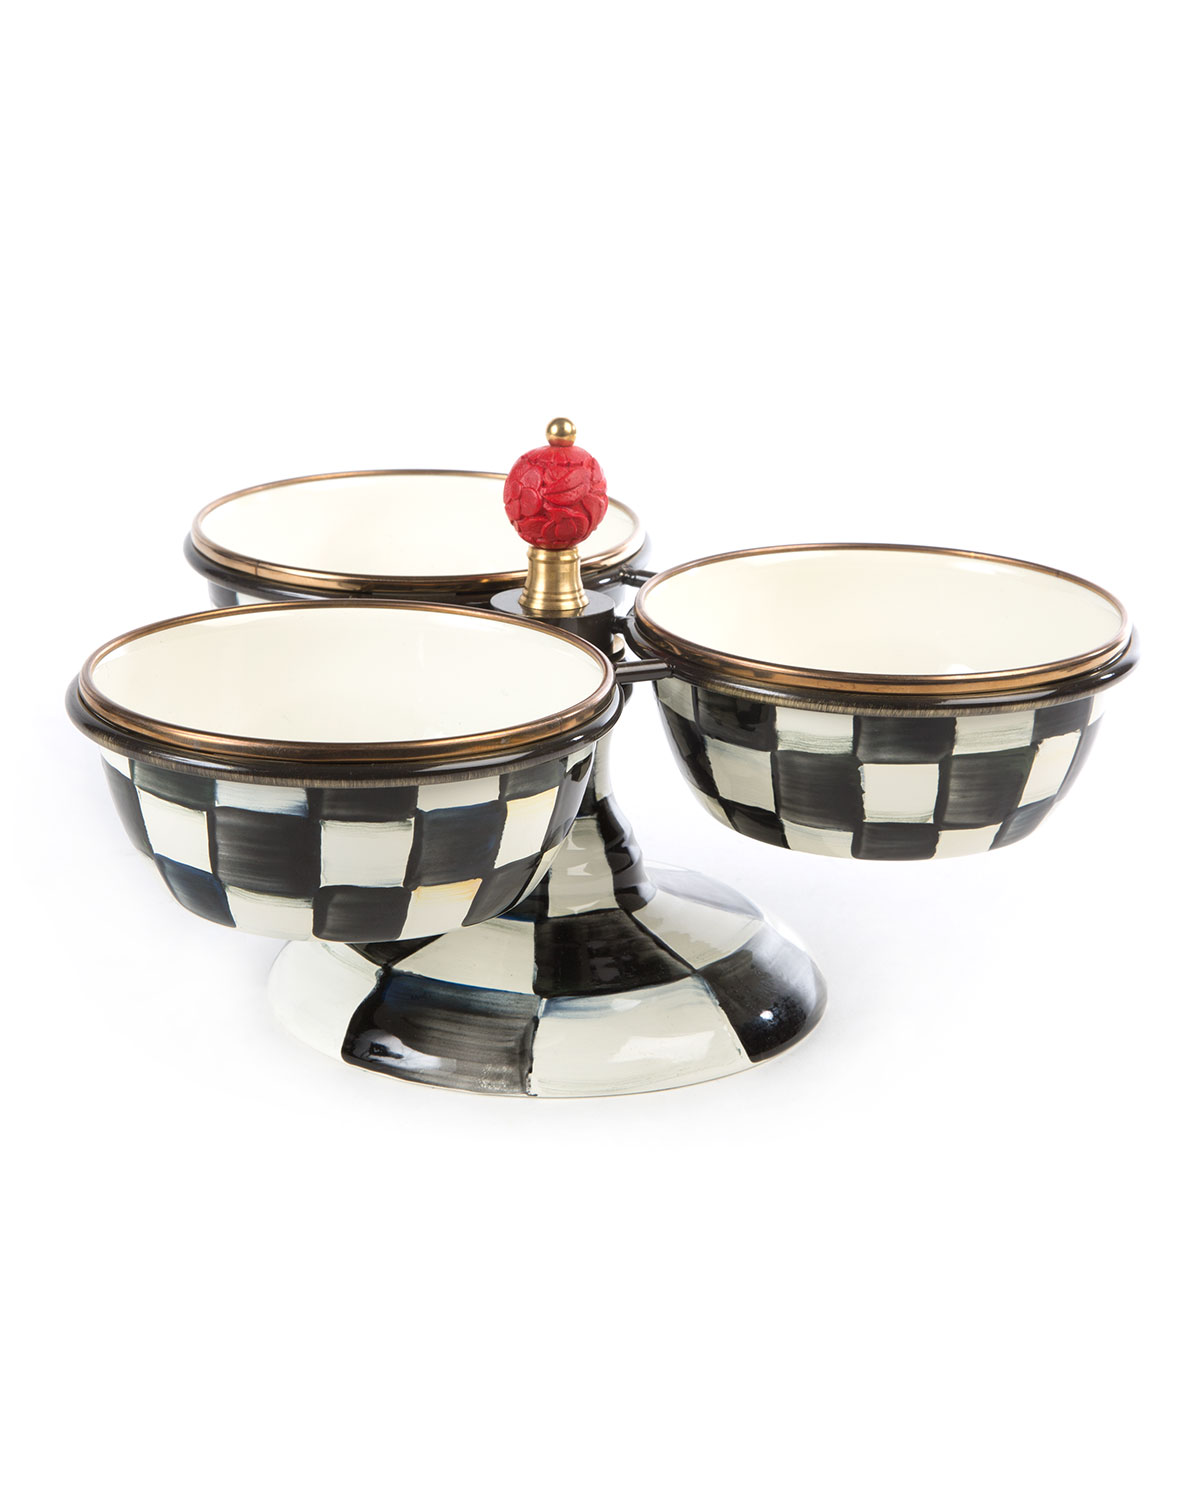 MacKenzie-Childs Courtly Check Enamel Triple Bowl Server